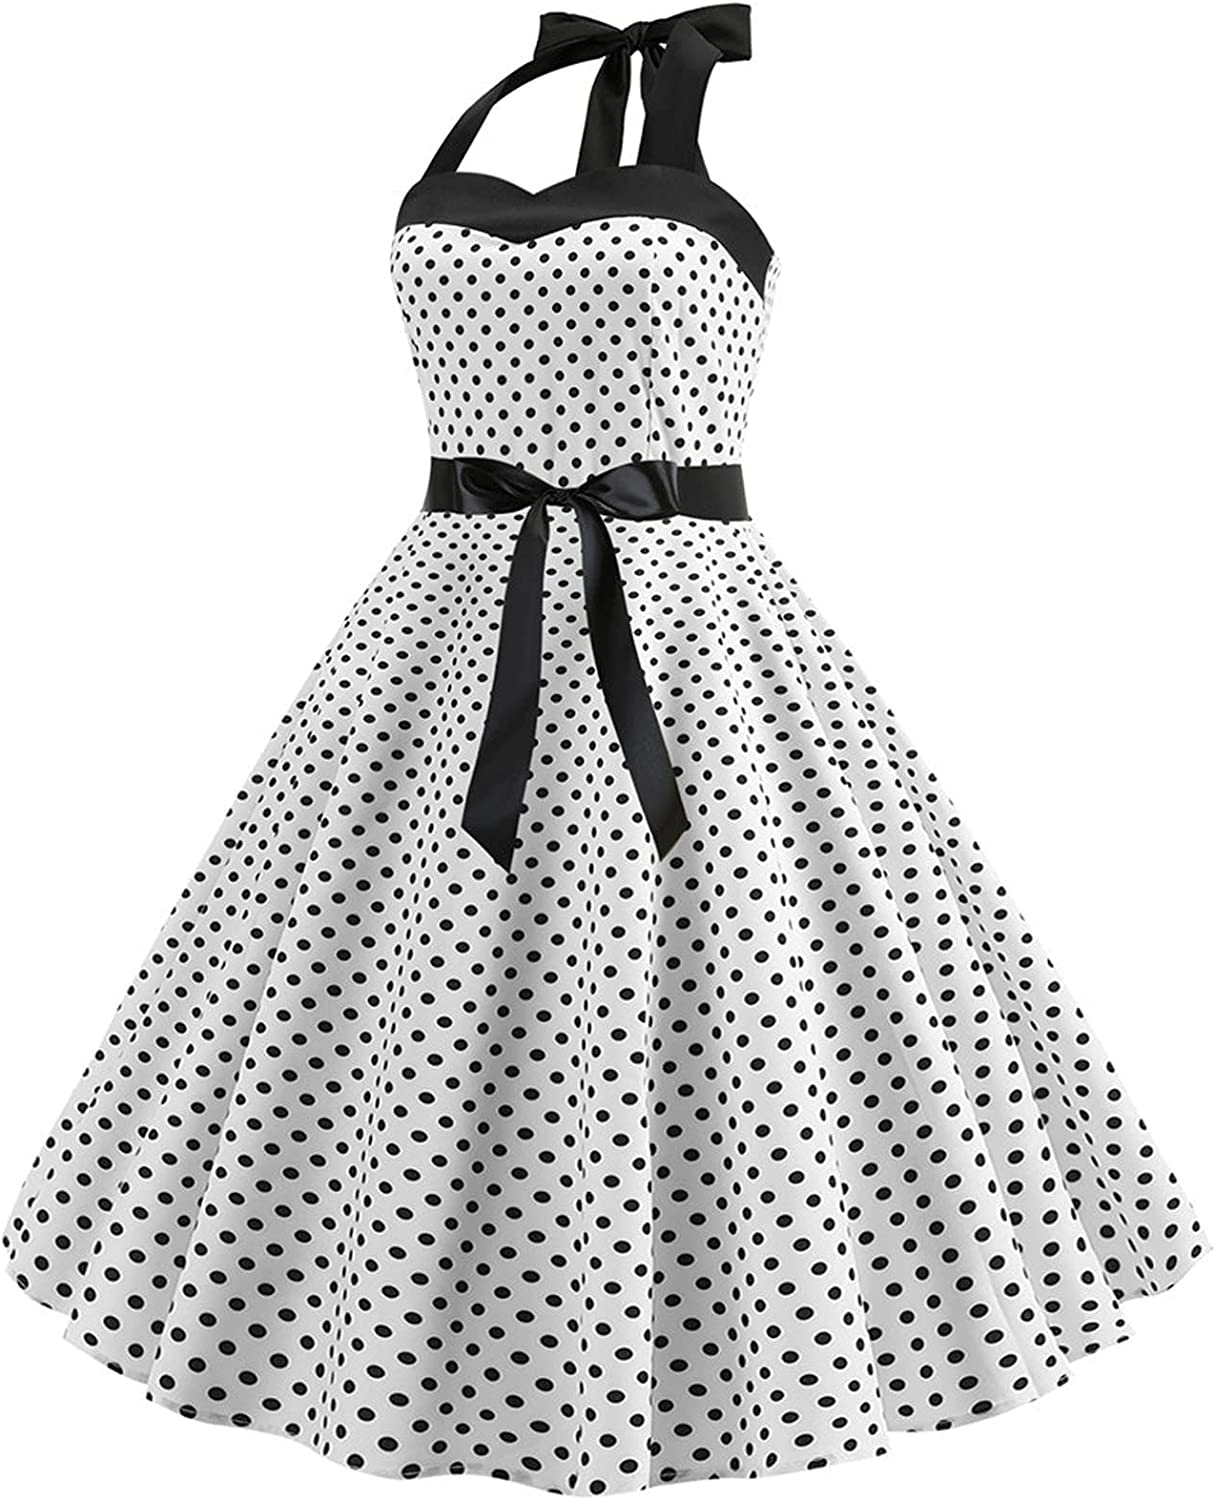 Women Casual Polka Dot Dresses, Slim Fit Sexy A Line Sleeveless Halter Lace Up Party Cocktail Pleated Skeater Dress